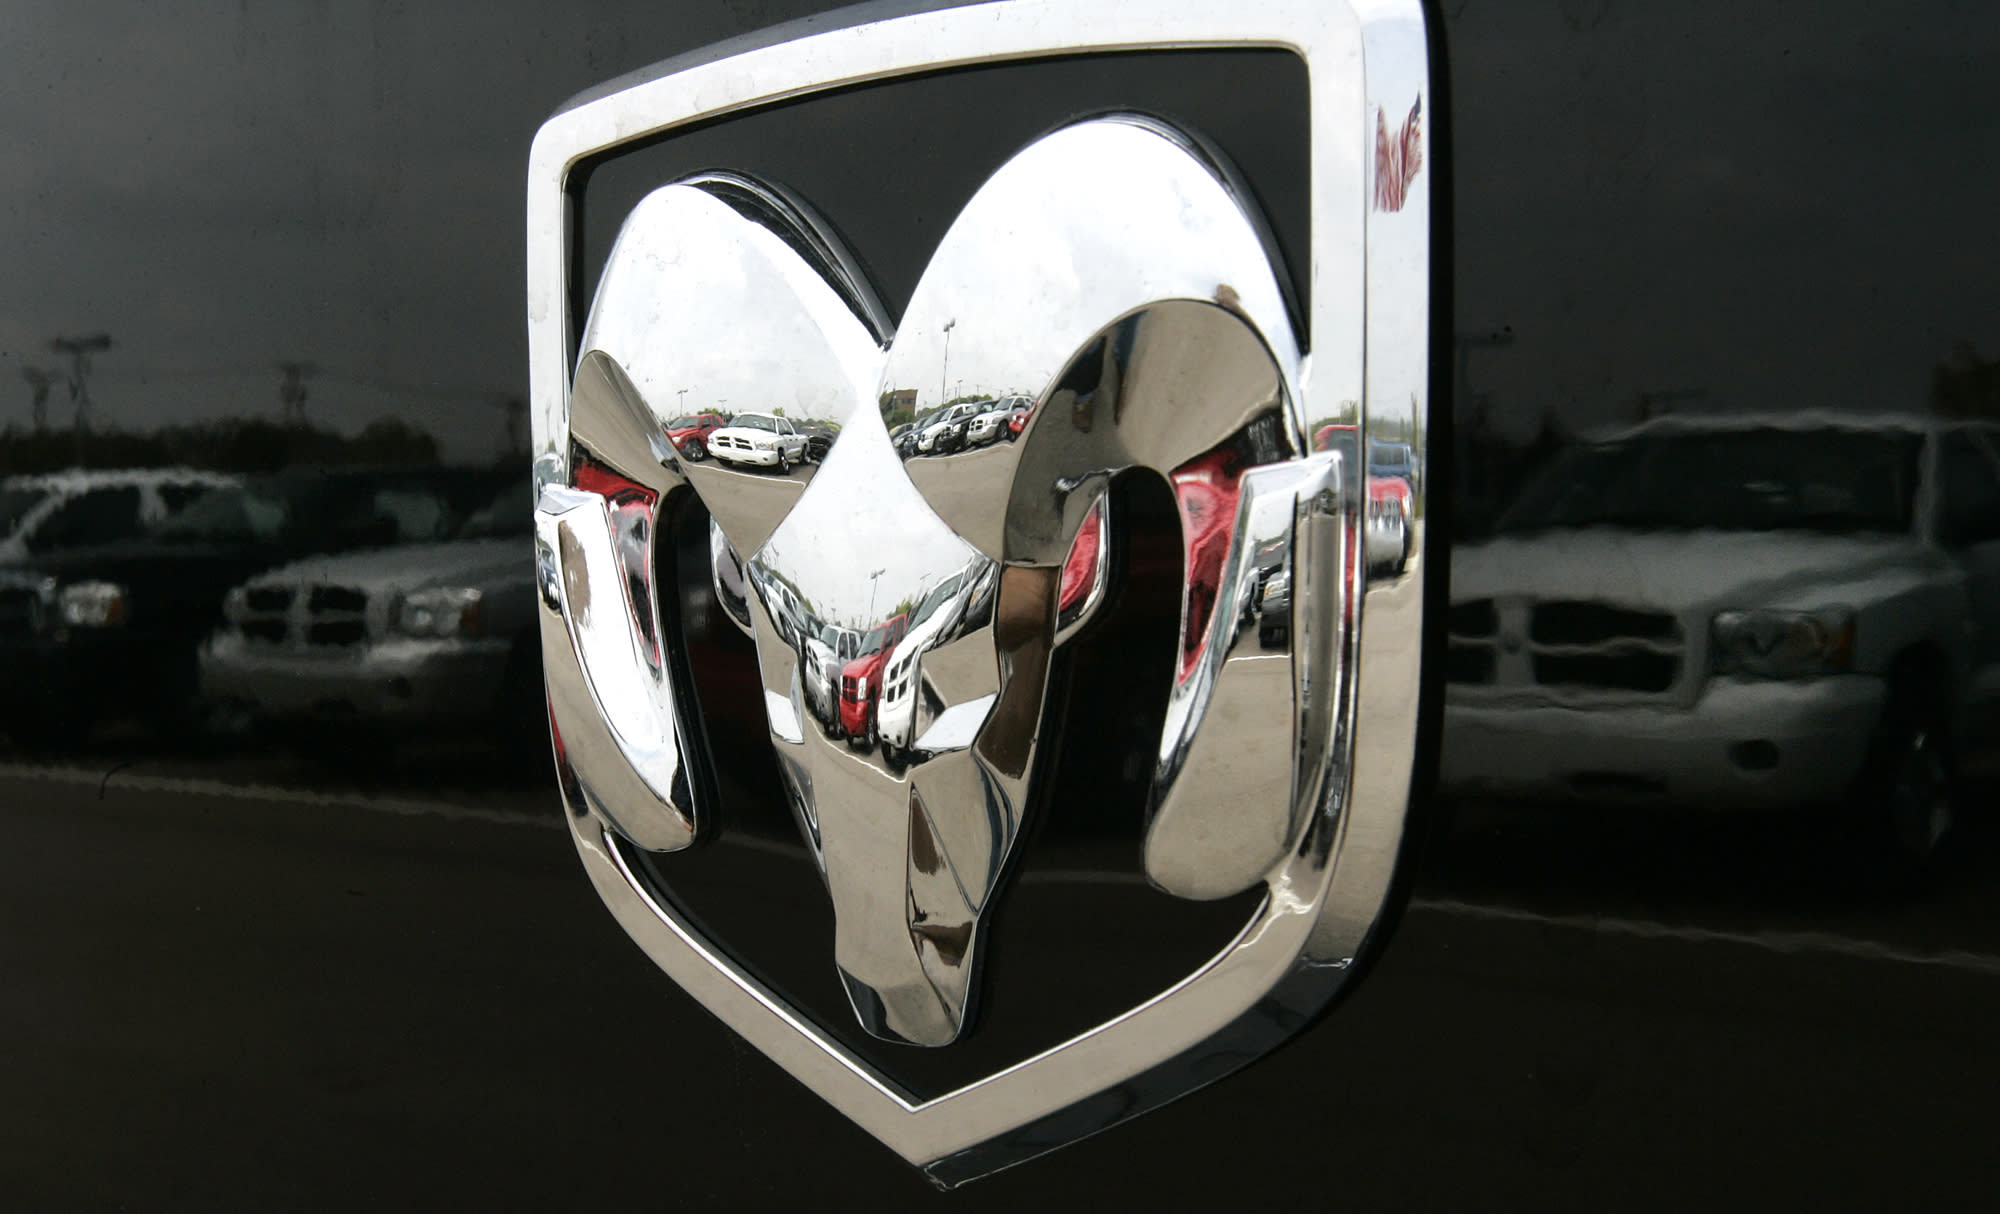 Chrysler to recall about 288K Ram pickup trucks